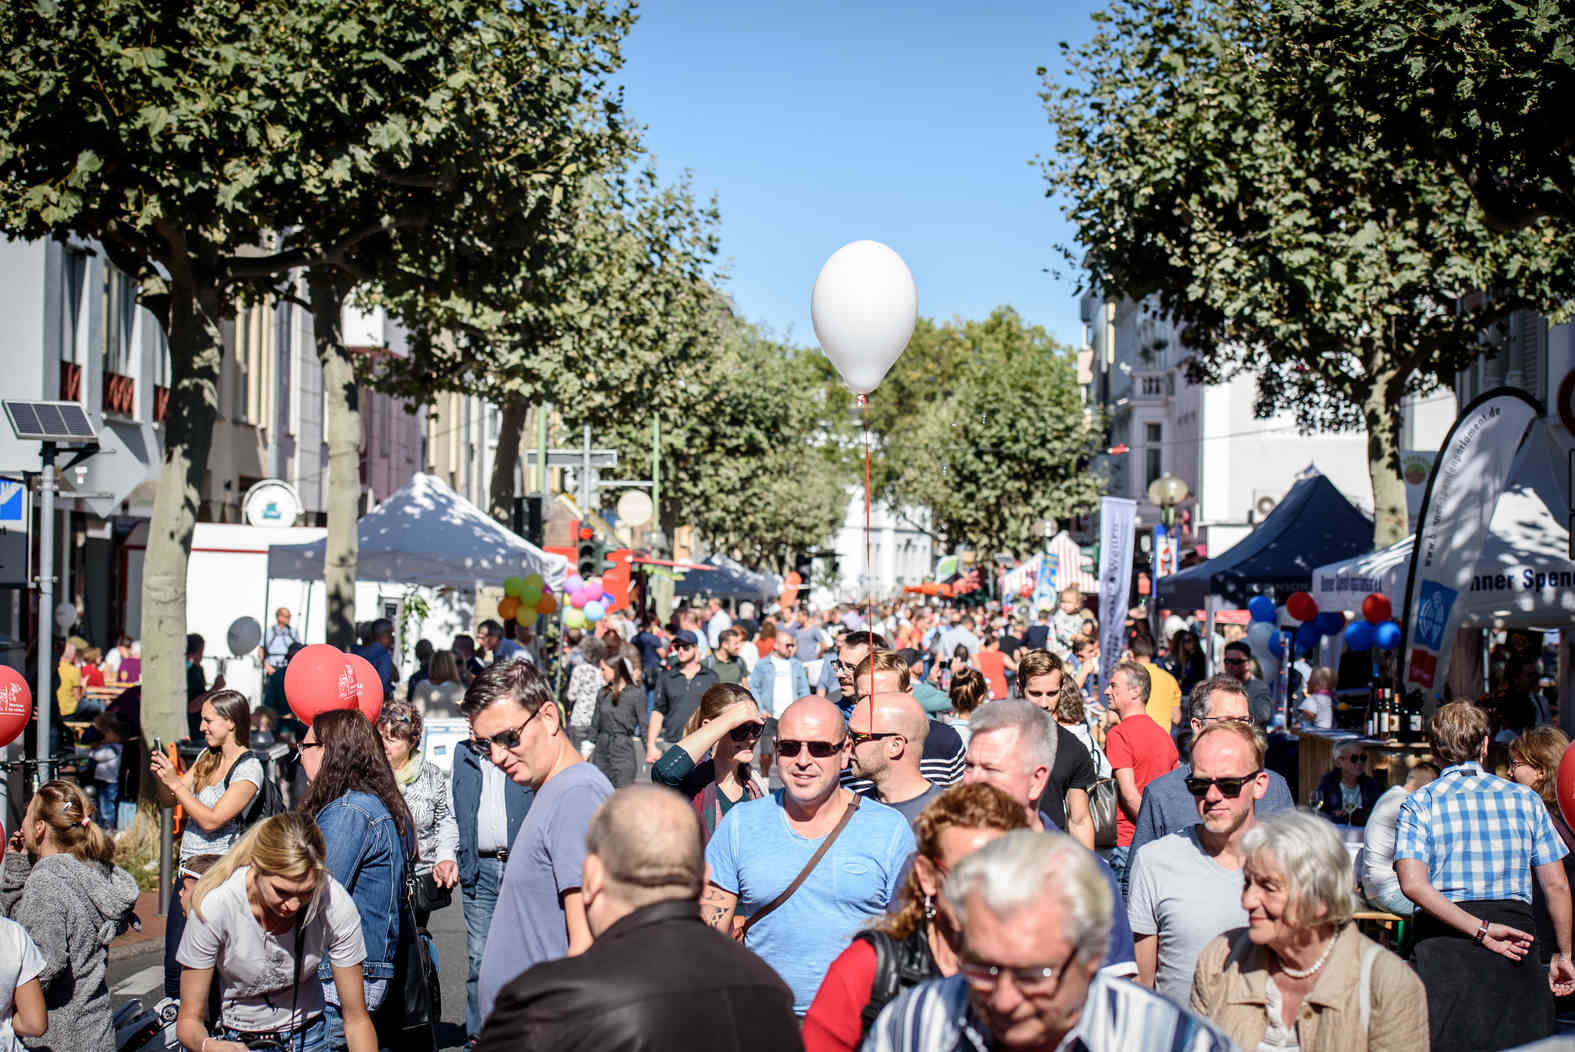 The 37th Poppelsdorf Street Festival attracted